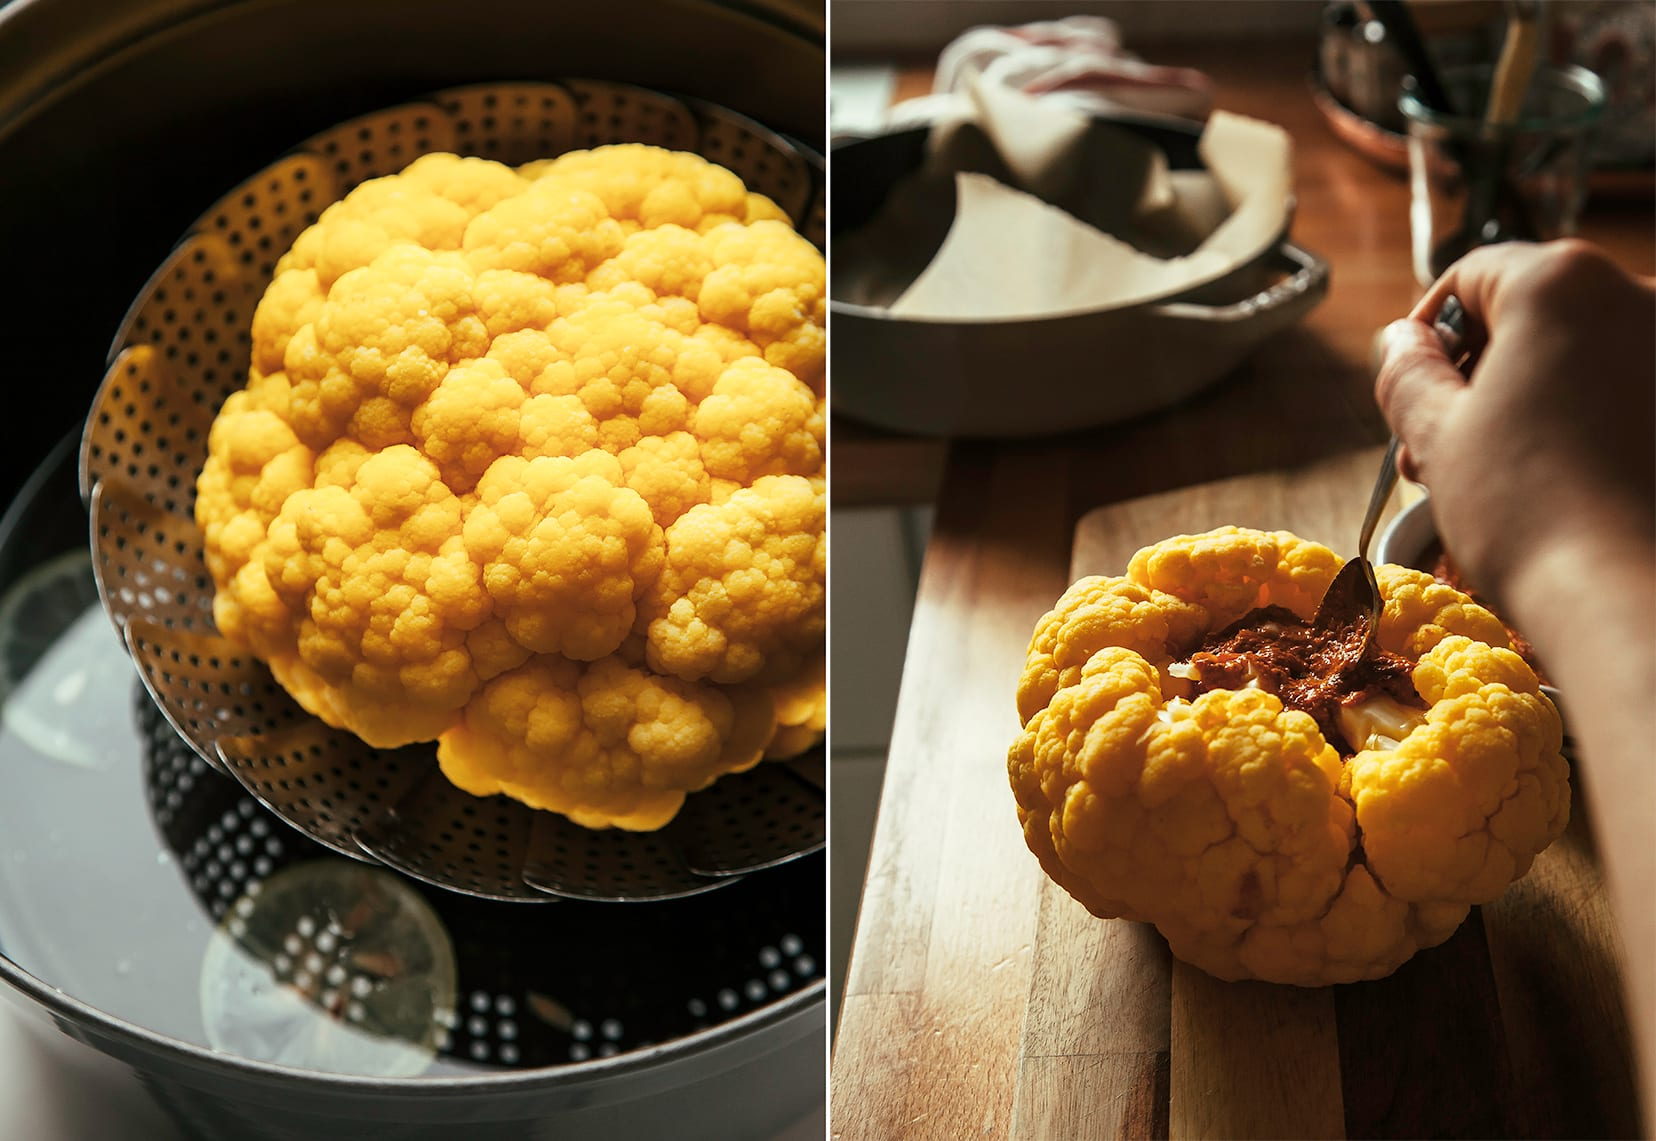 Image shows a whole steamed cauliflower as well as a hand spooning romesco into the core of the cauliflower.